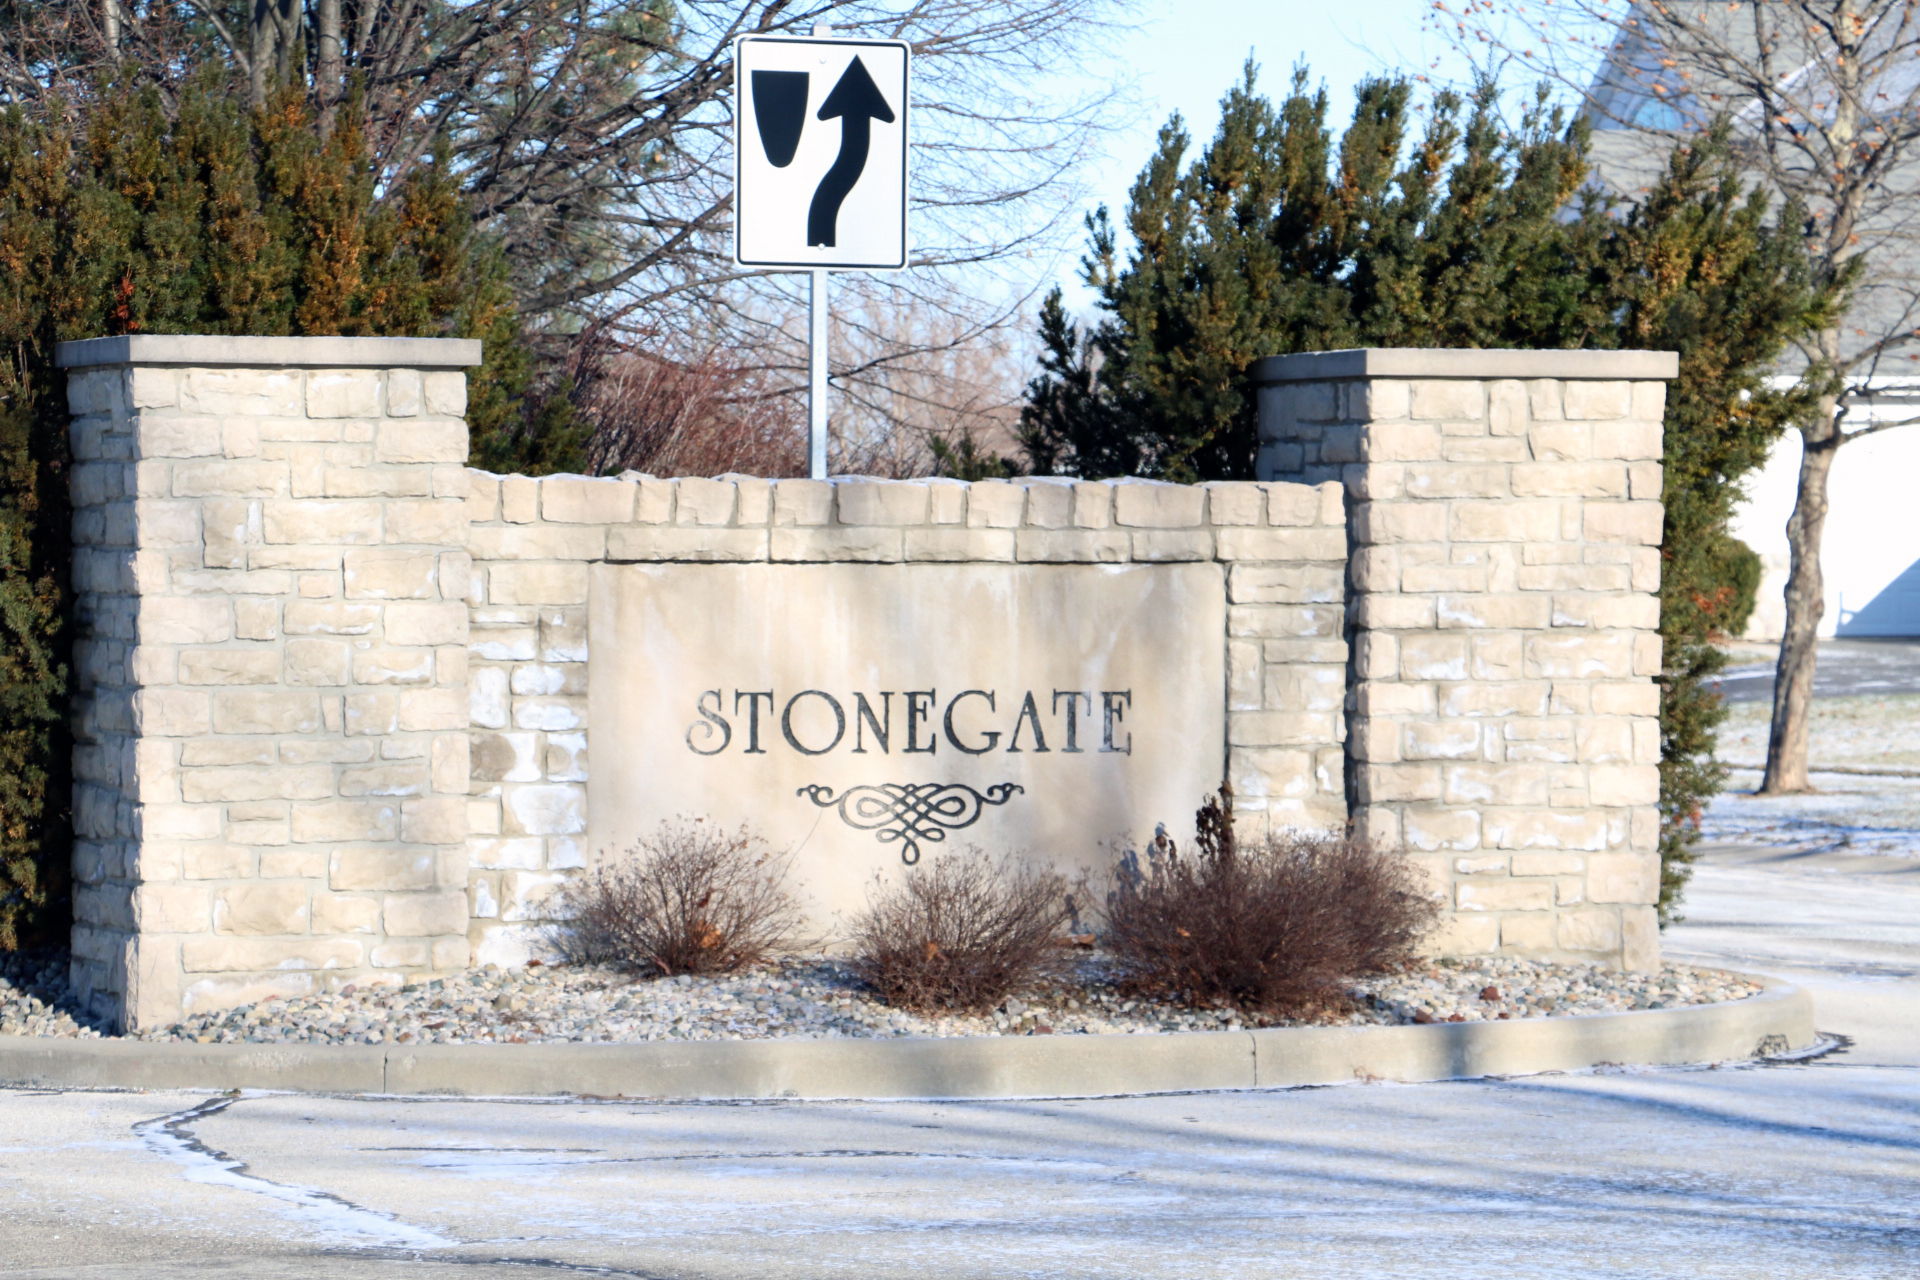 Stonegate Homes for Sale & Stonegate Real Estate